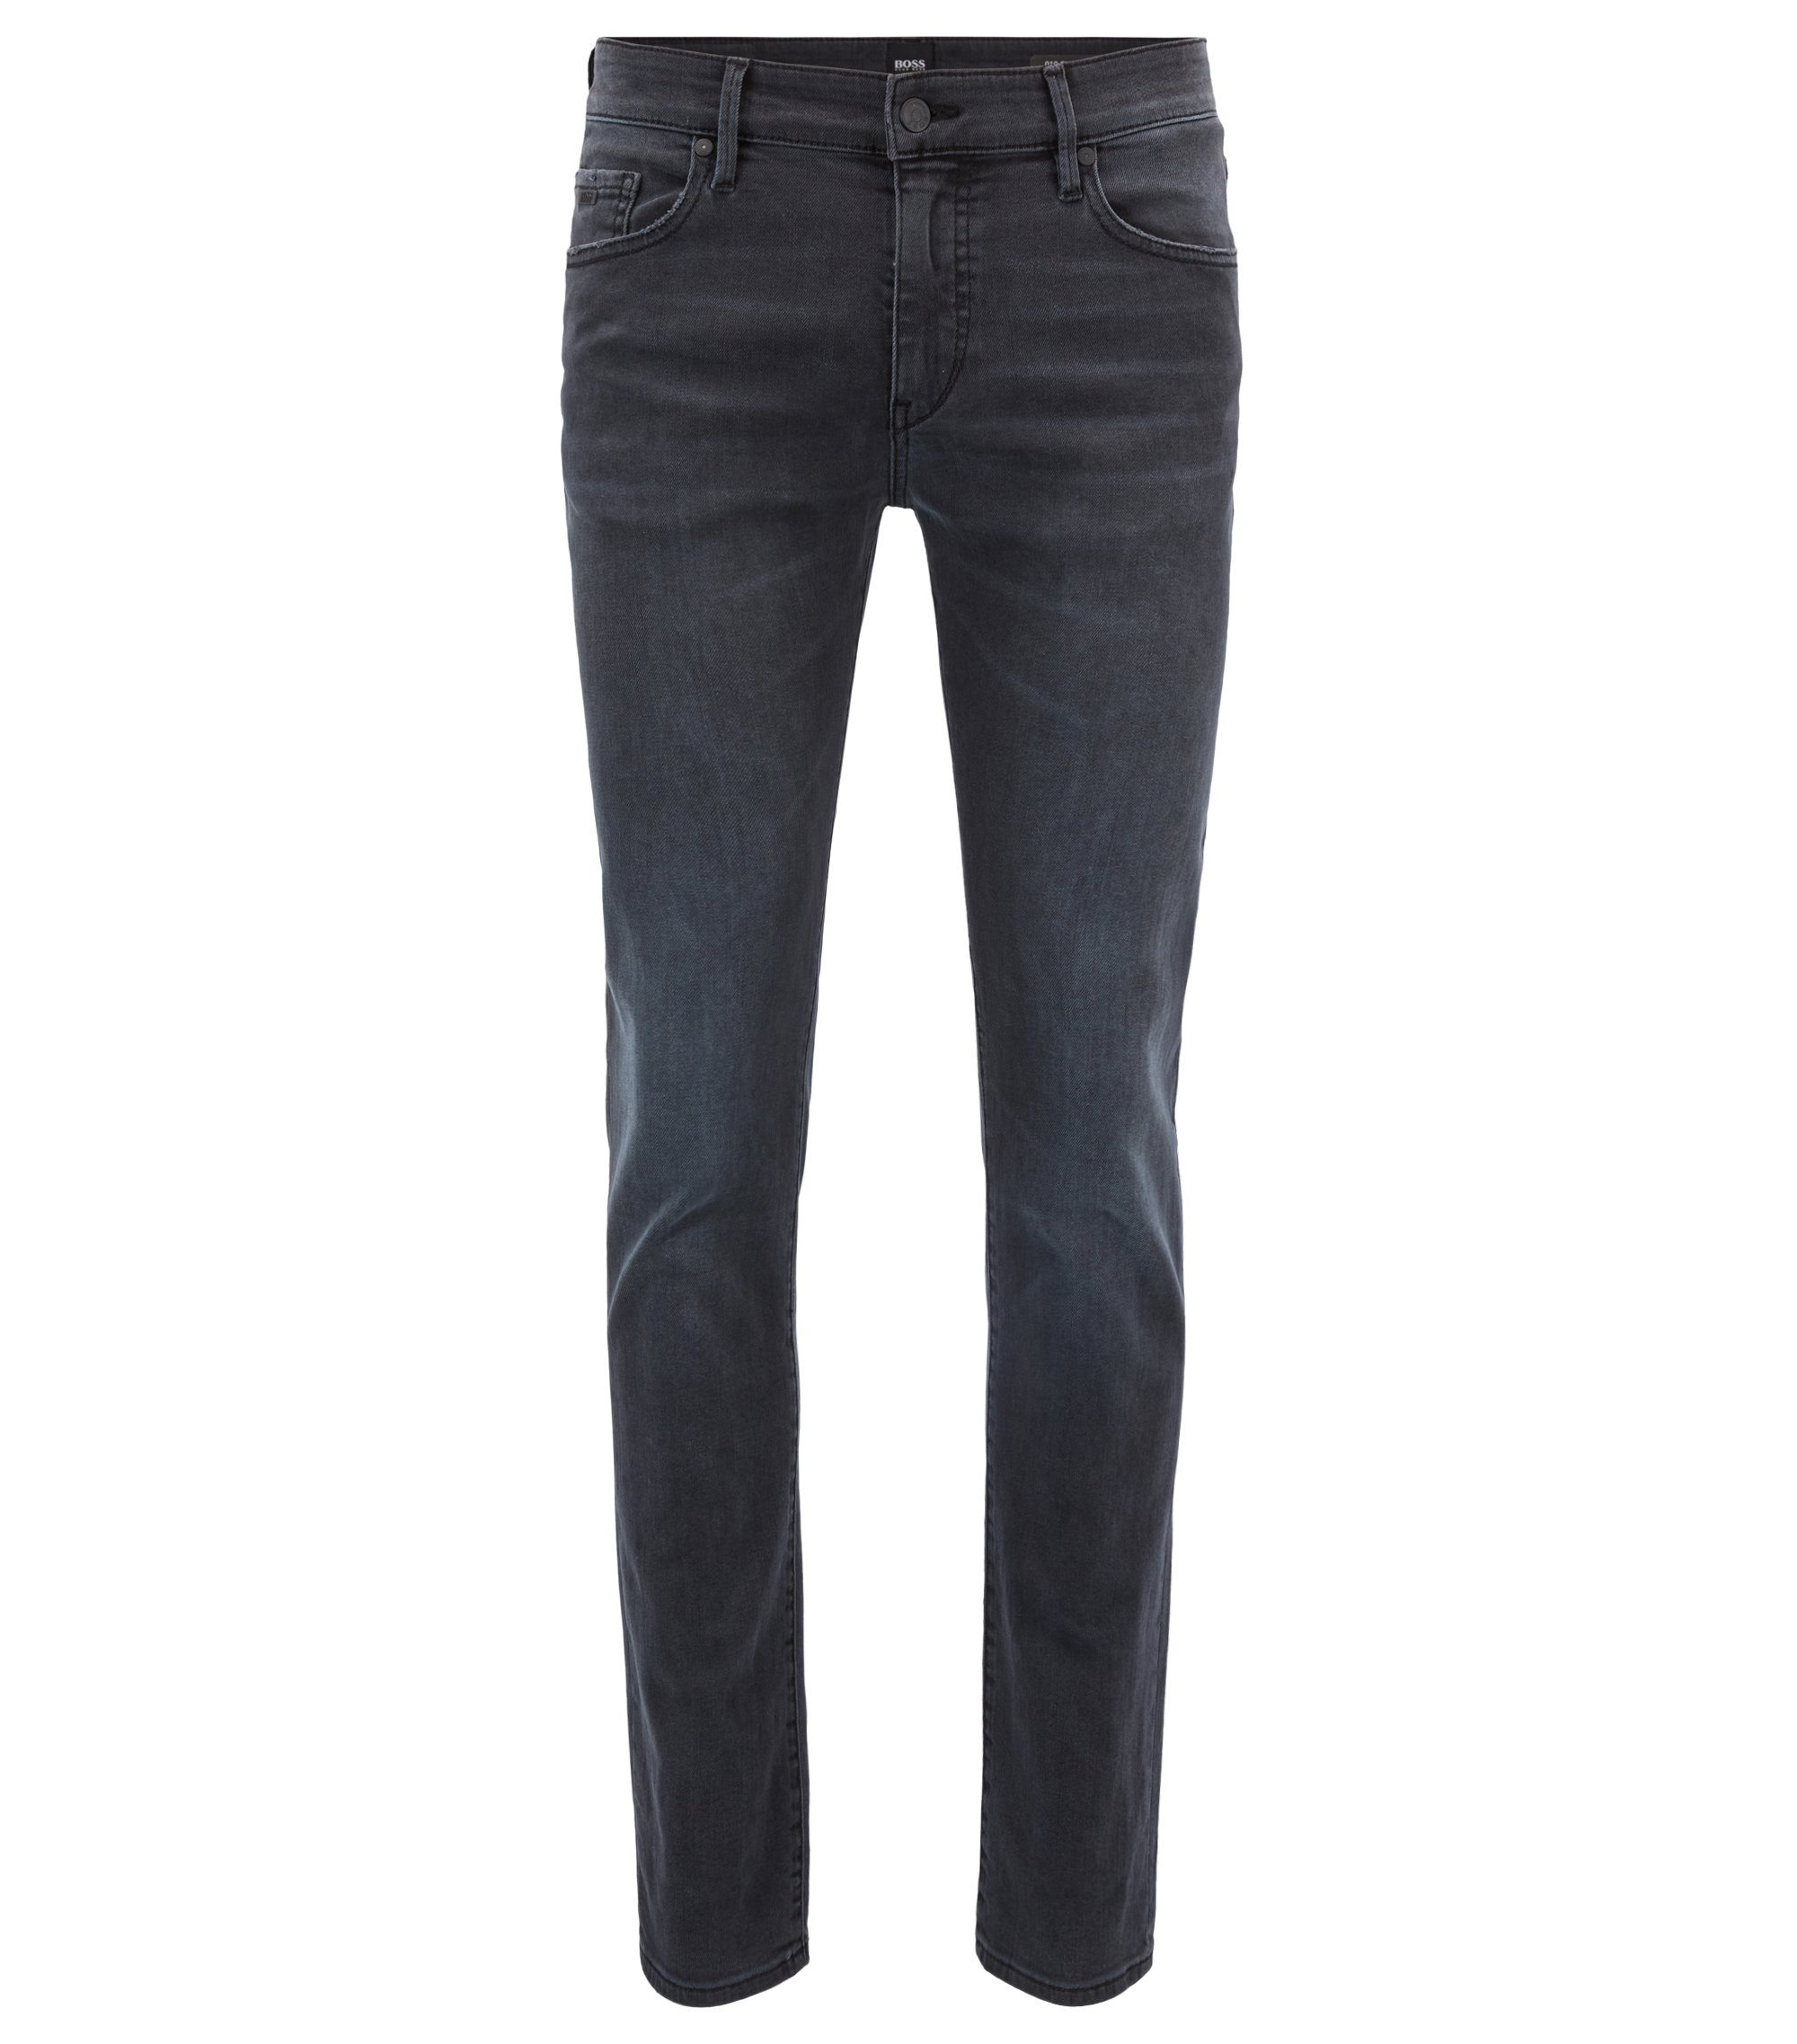 Jean Skinny Fit en denim noir lavé super stretch, Anthracite